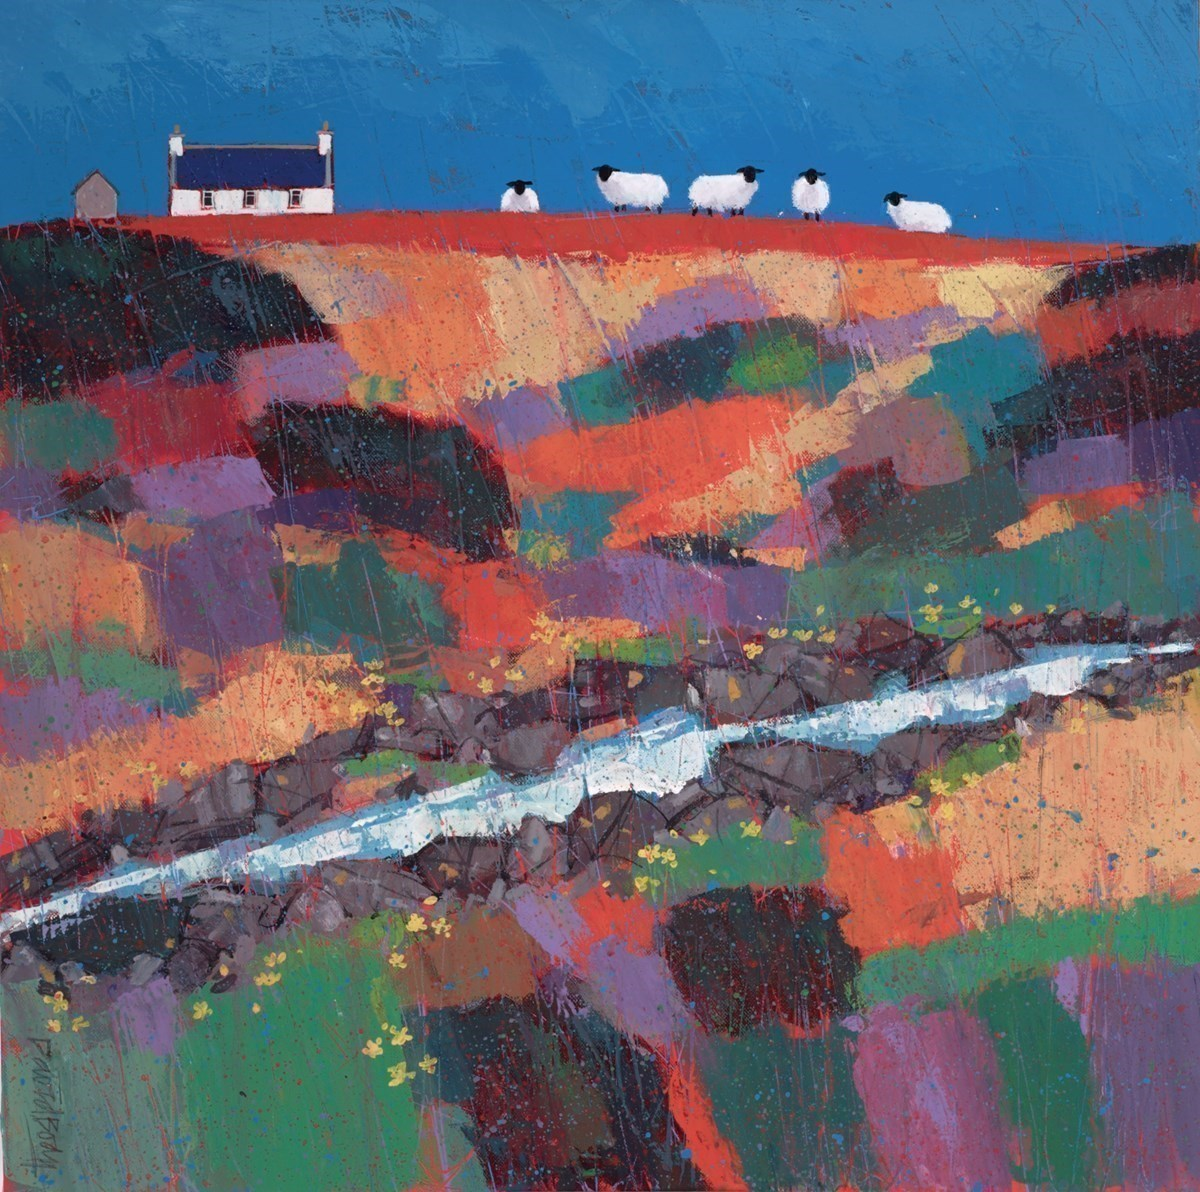 Sheep in Stream by David Body -  sized 24x24 inches. Available from Whitewall Galleries